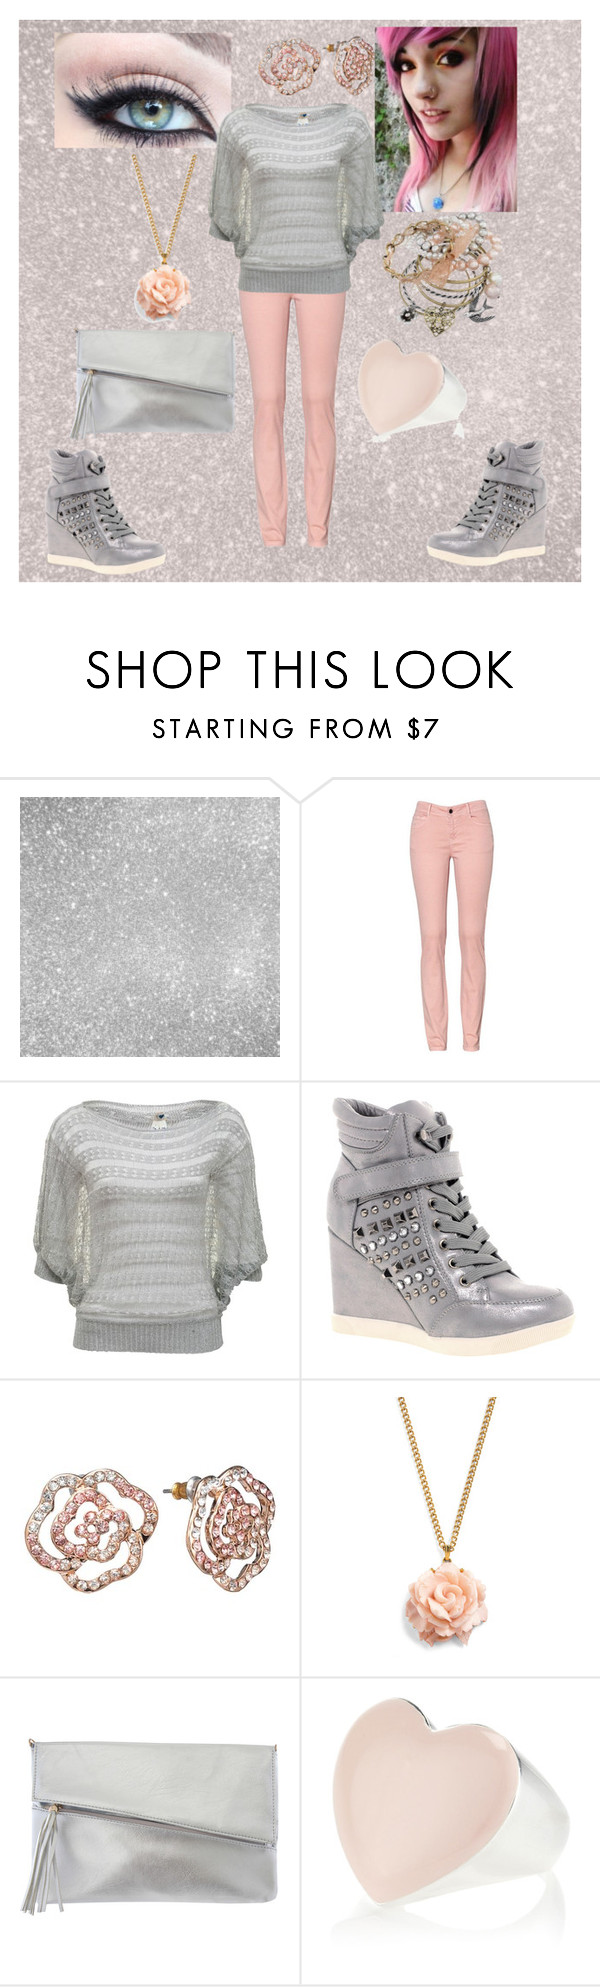 """""""random#24"""" by faleur102 ❤ liked on Polyvore featuring A